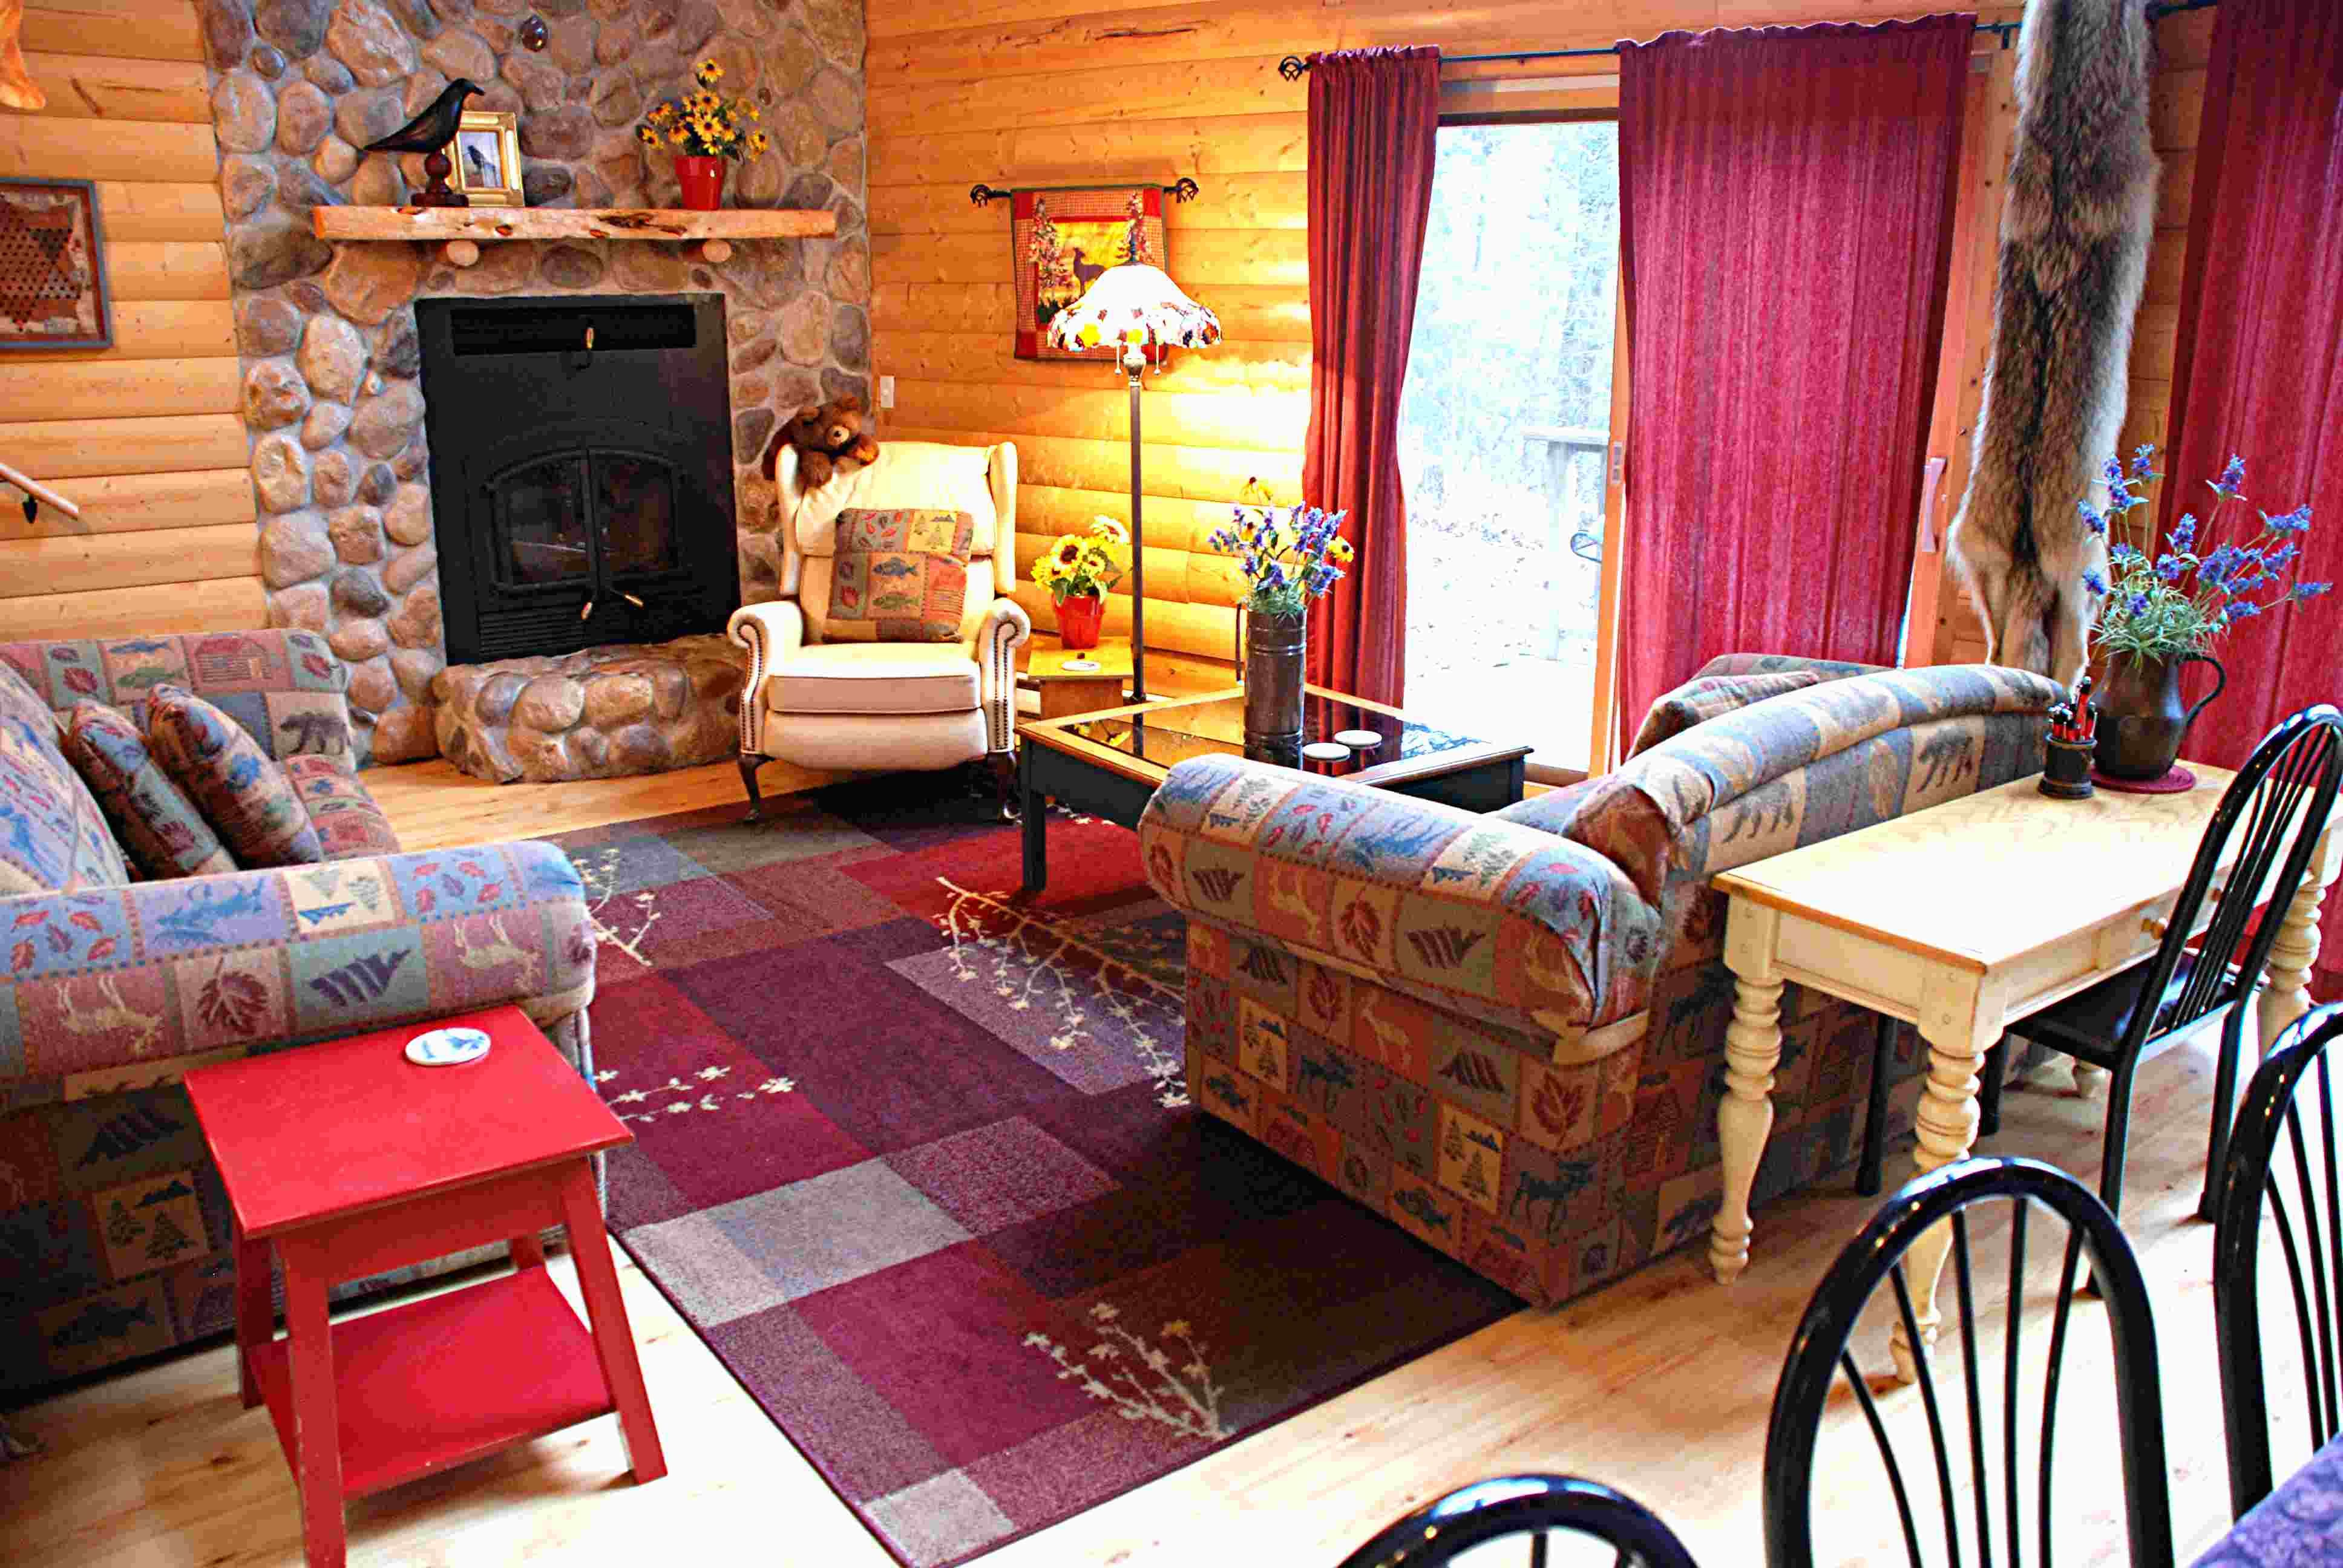 interior davis rental oklahoma broken minnesota bow cabins rent romantic on the bthrooms cabin livg totl water southeast for